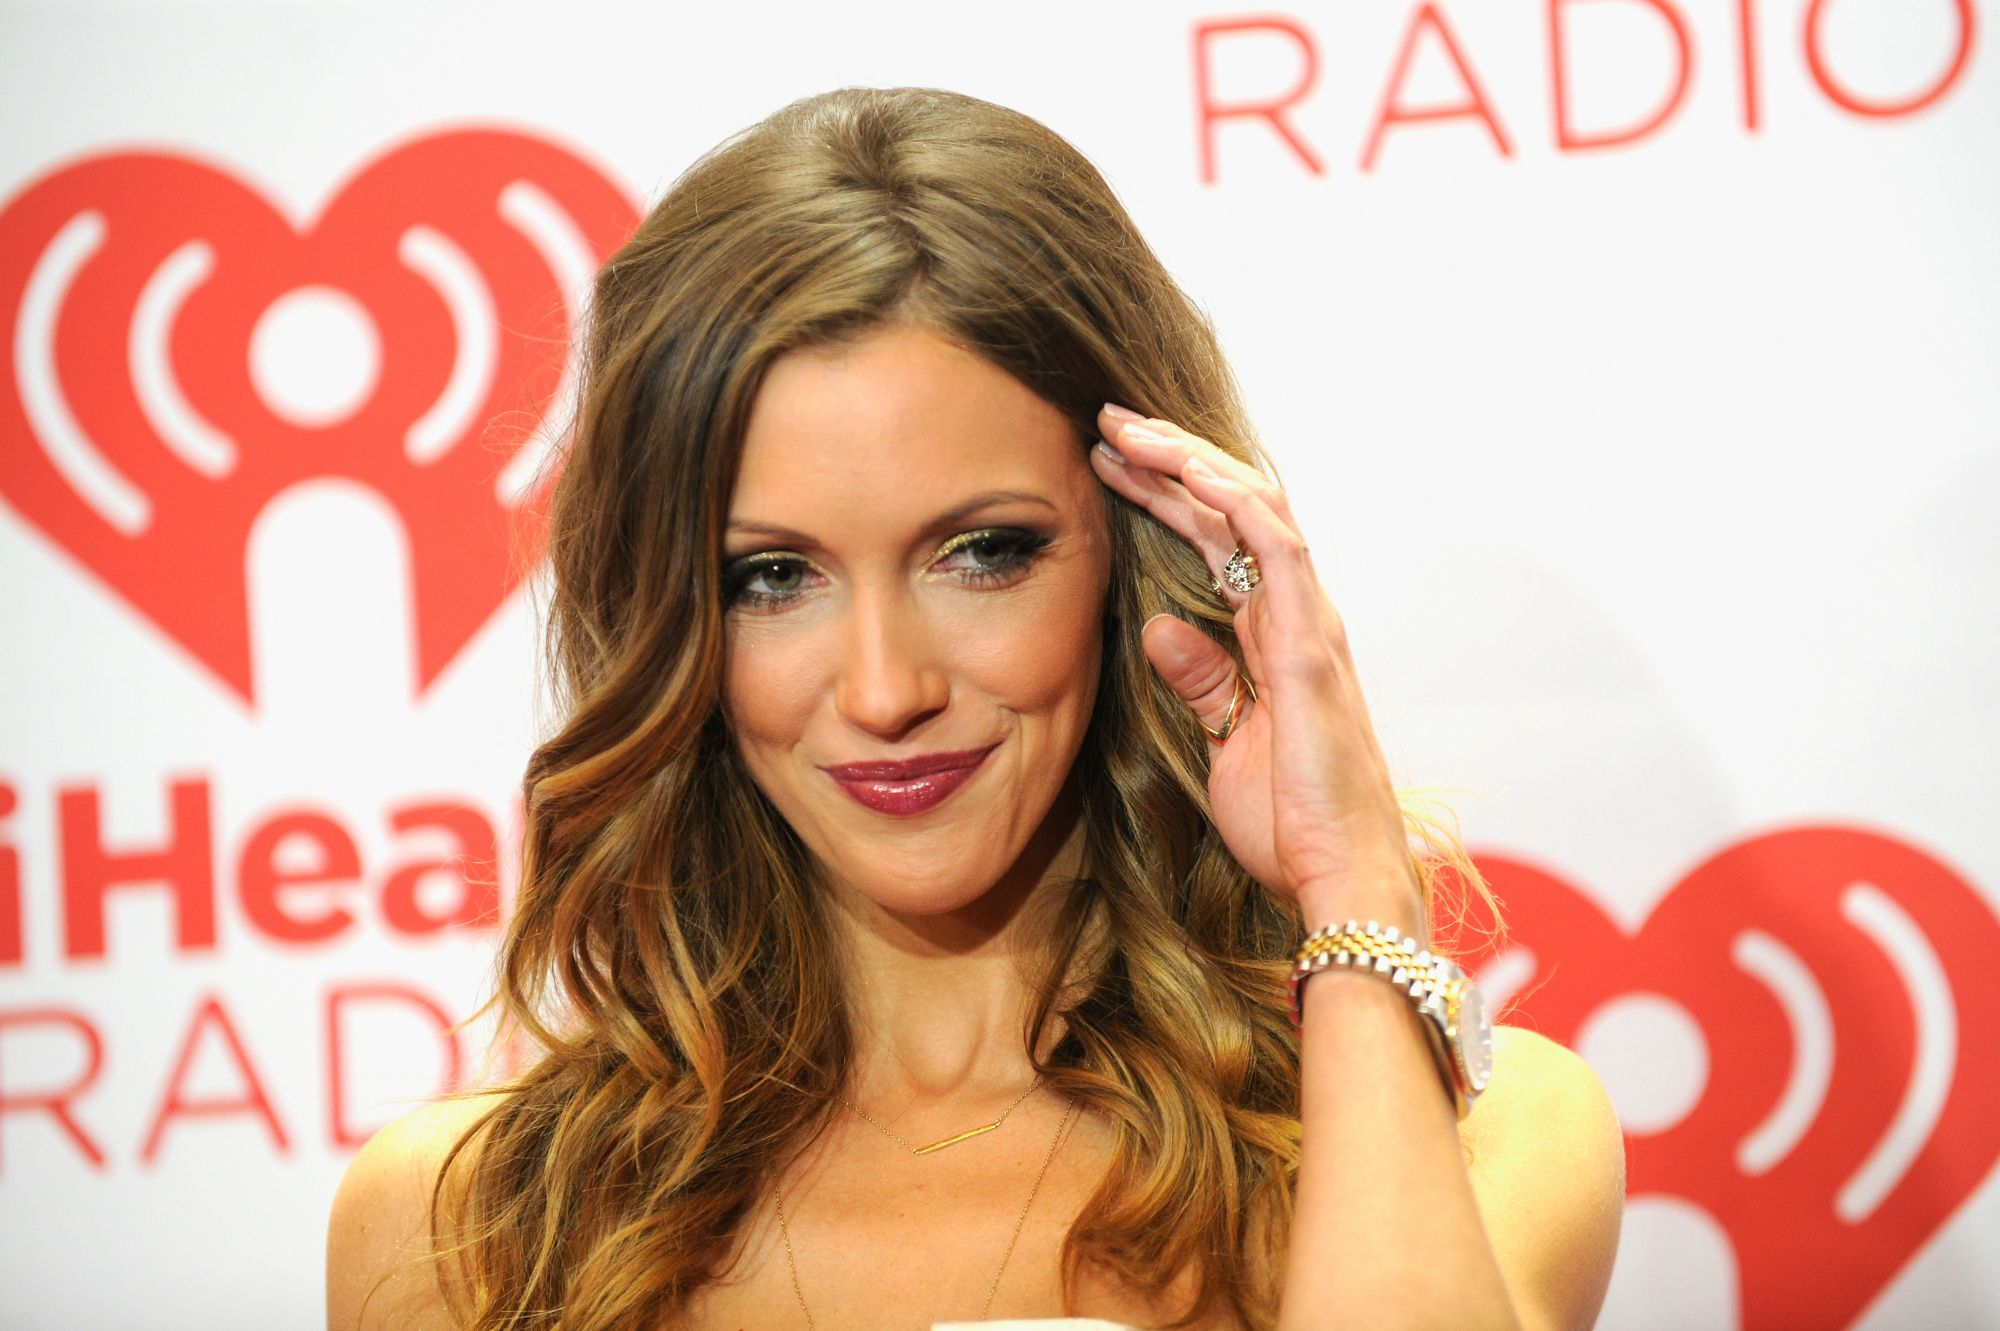 Katie Cassidy, David Cassidy's daughter